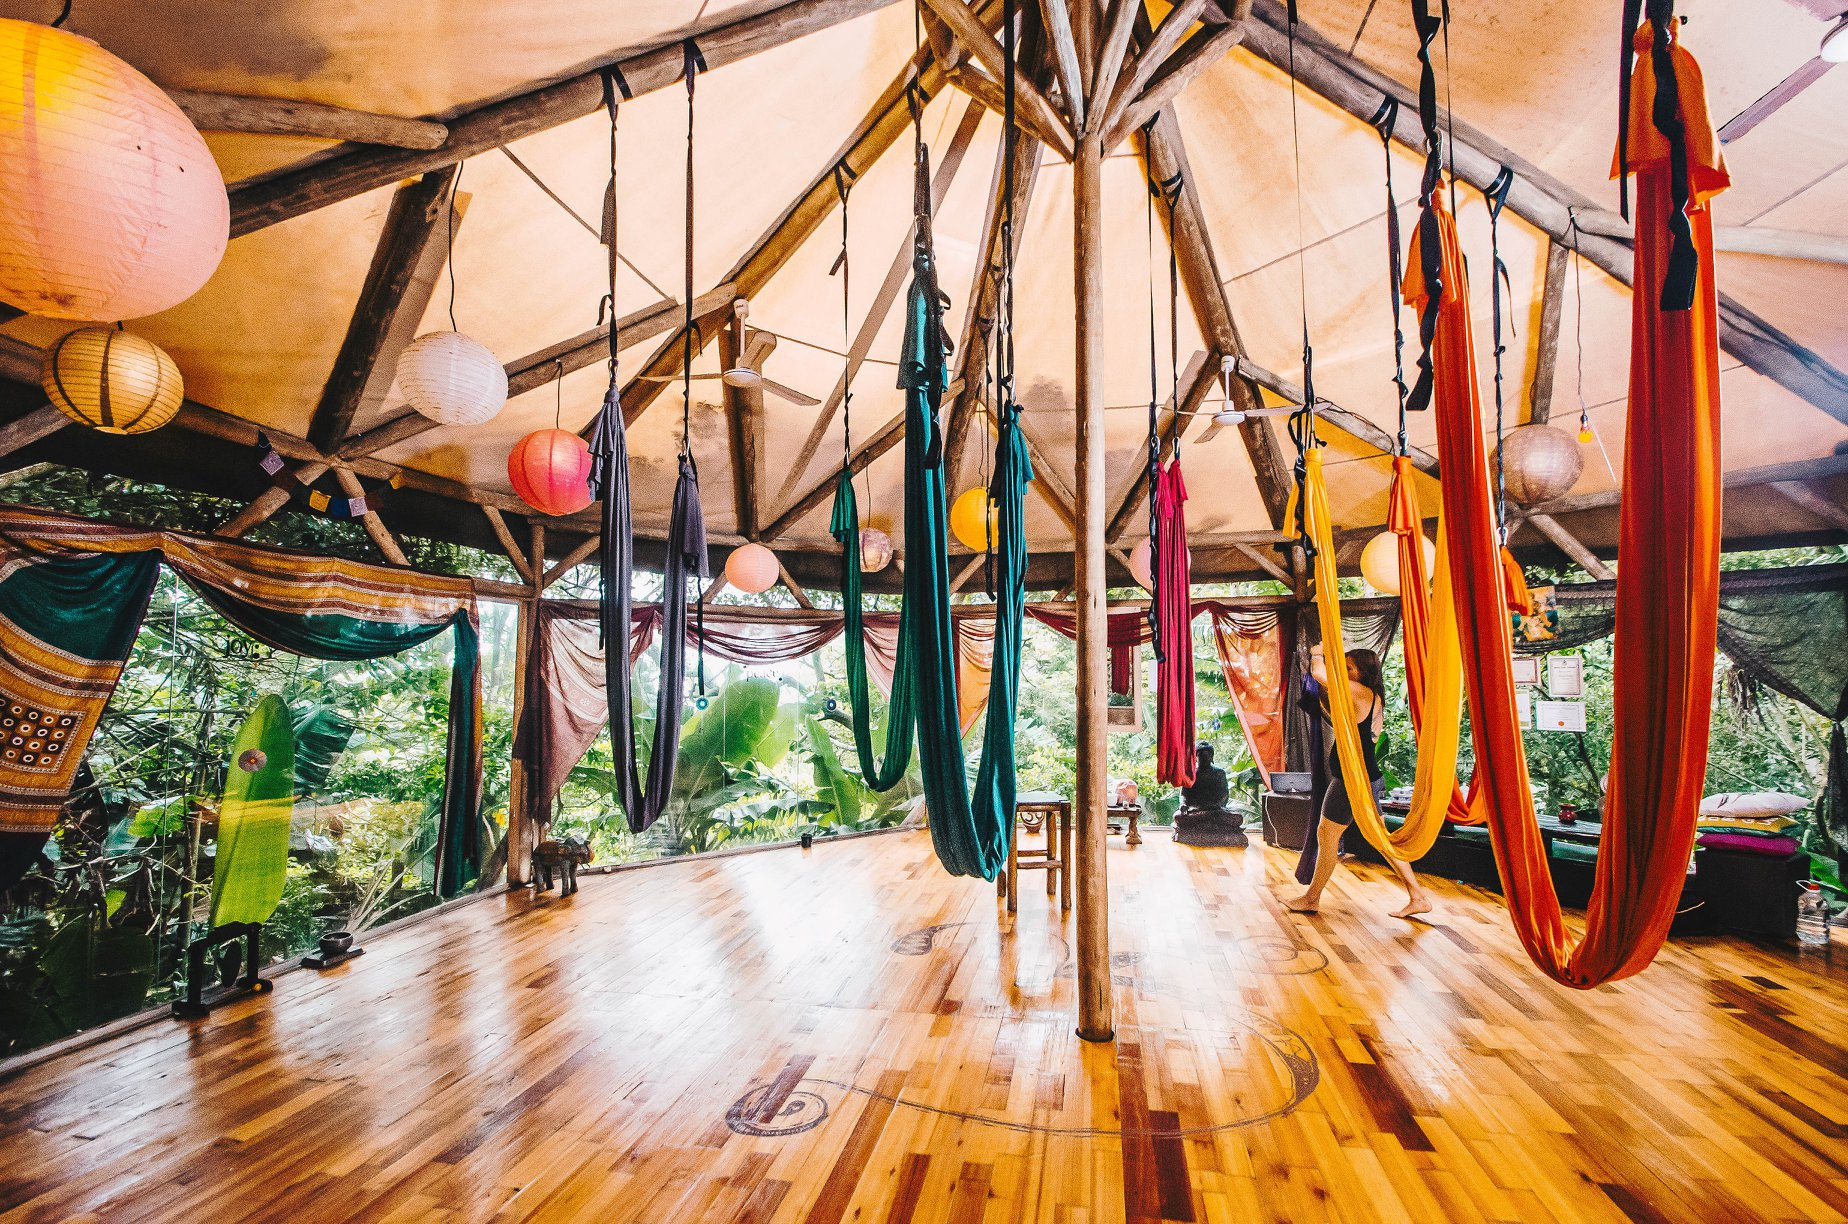 SA Yoga hammock supplies - SA Yoga Hammock Supplies are dedicated to supplying South African Yogi's with top quality Yoga Silks & Hammocks.